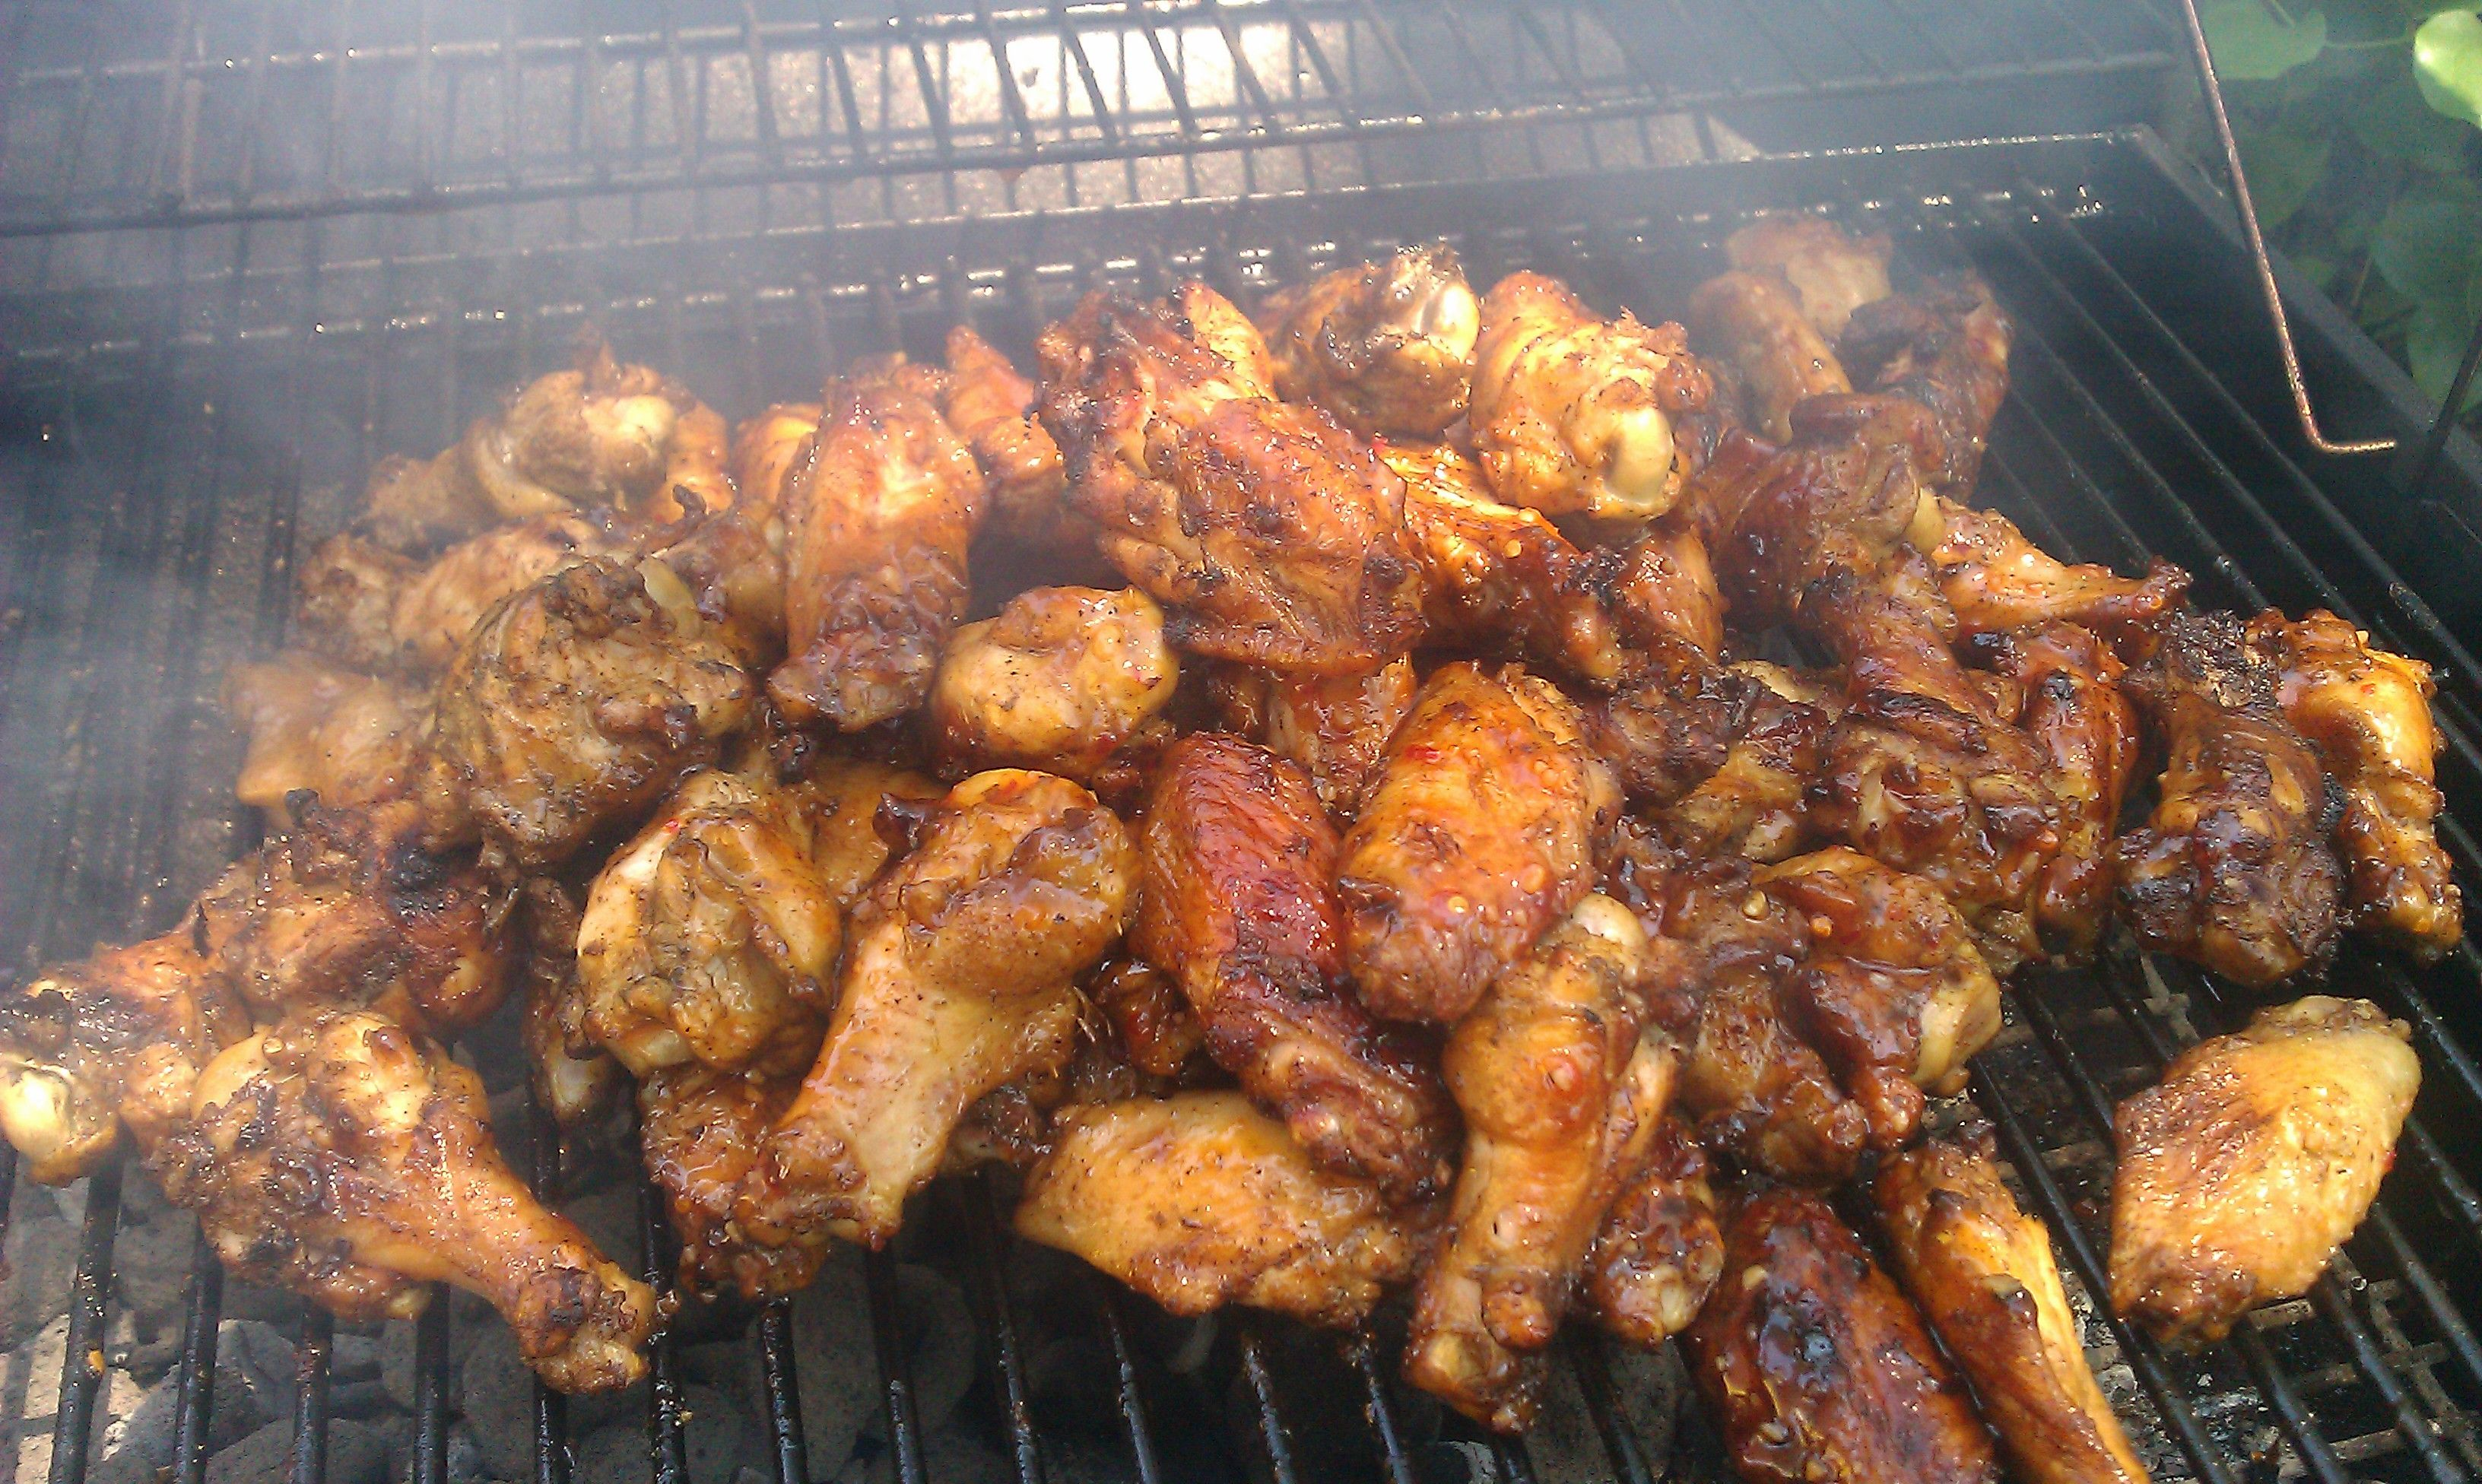 Grilled Jerk Chicken wings | Eats | Pinterest